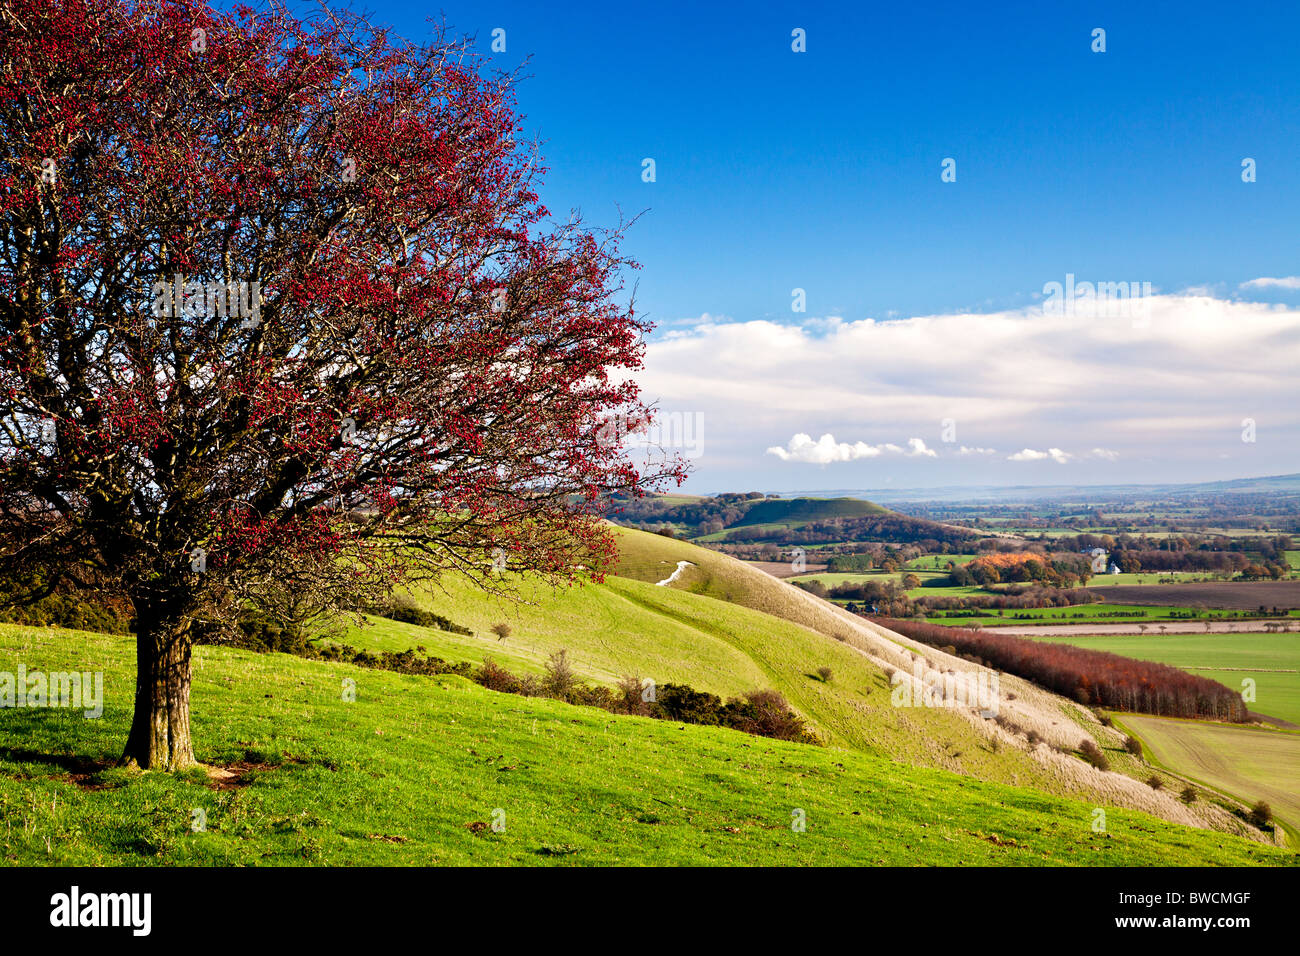 Hawthorn or May tree with red berries on Knapp Hill overlooking the Vale of Pewsey in Wiltshire, England, UK - Stock Image